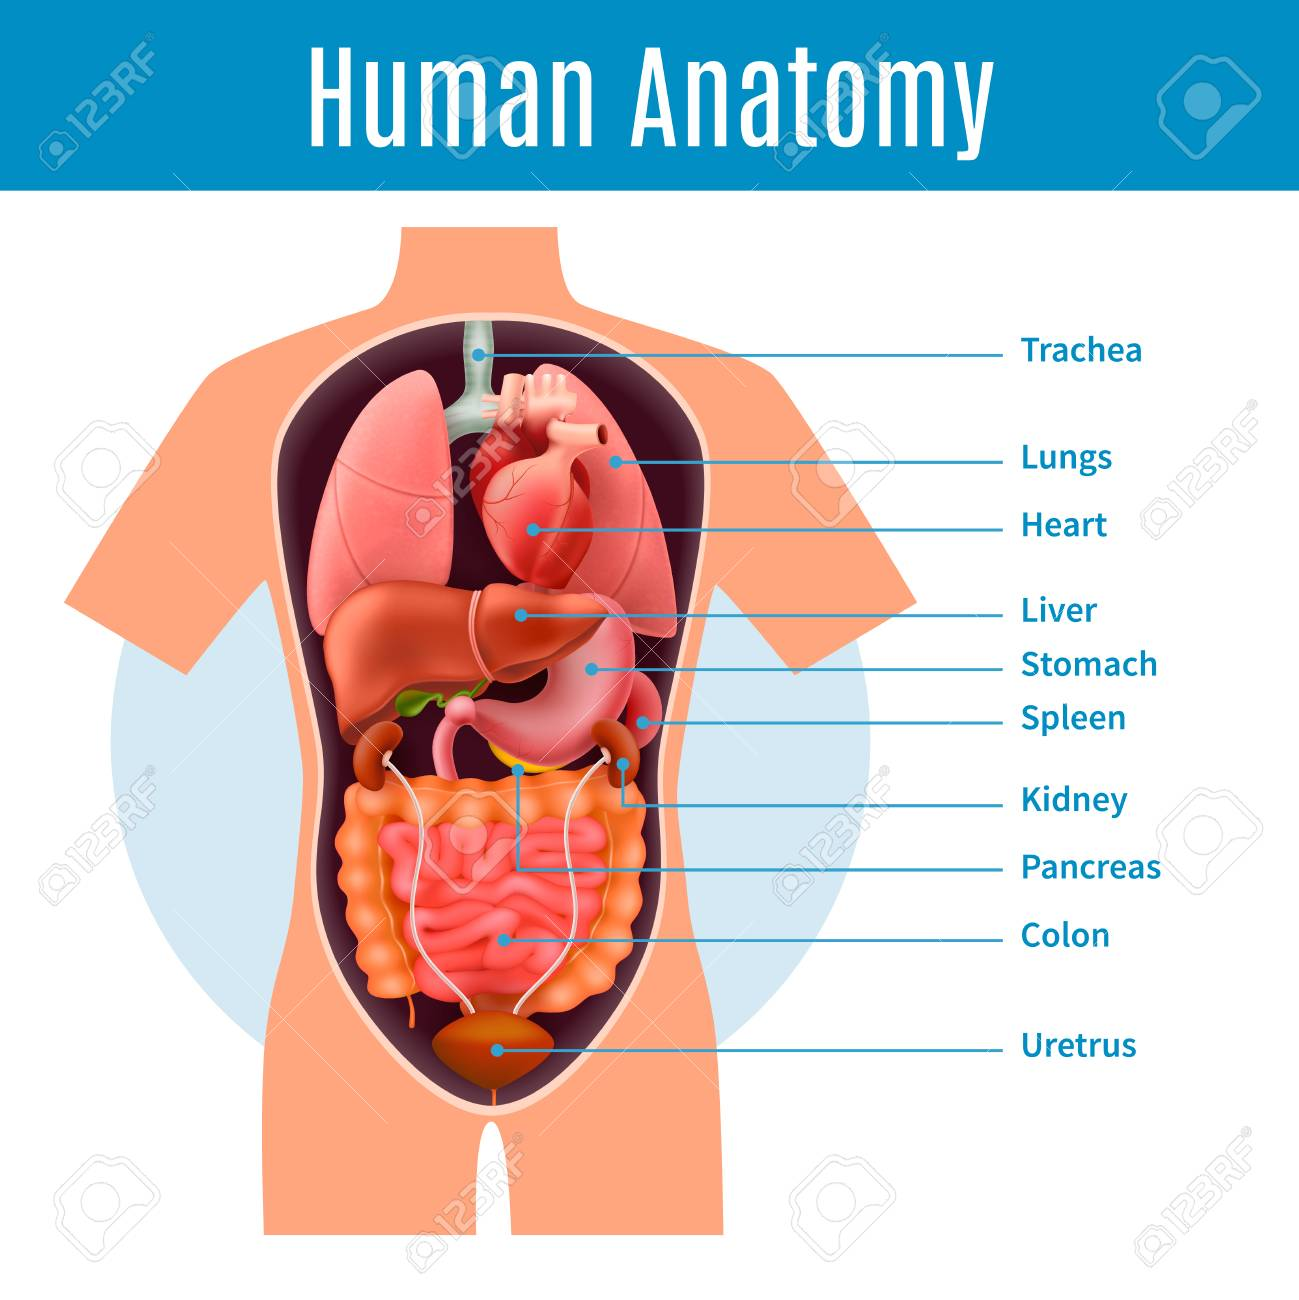 Human Anatomy Poster With Body Organs Names Realistic Vector